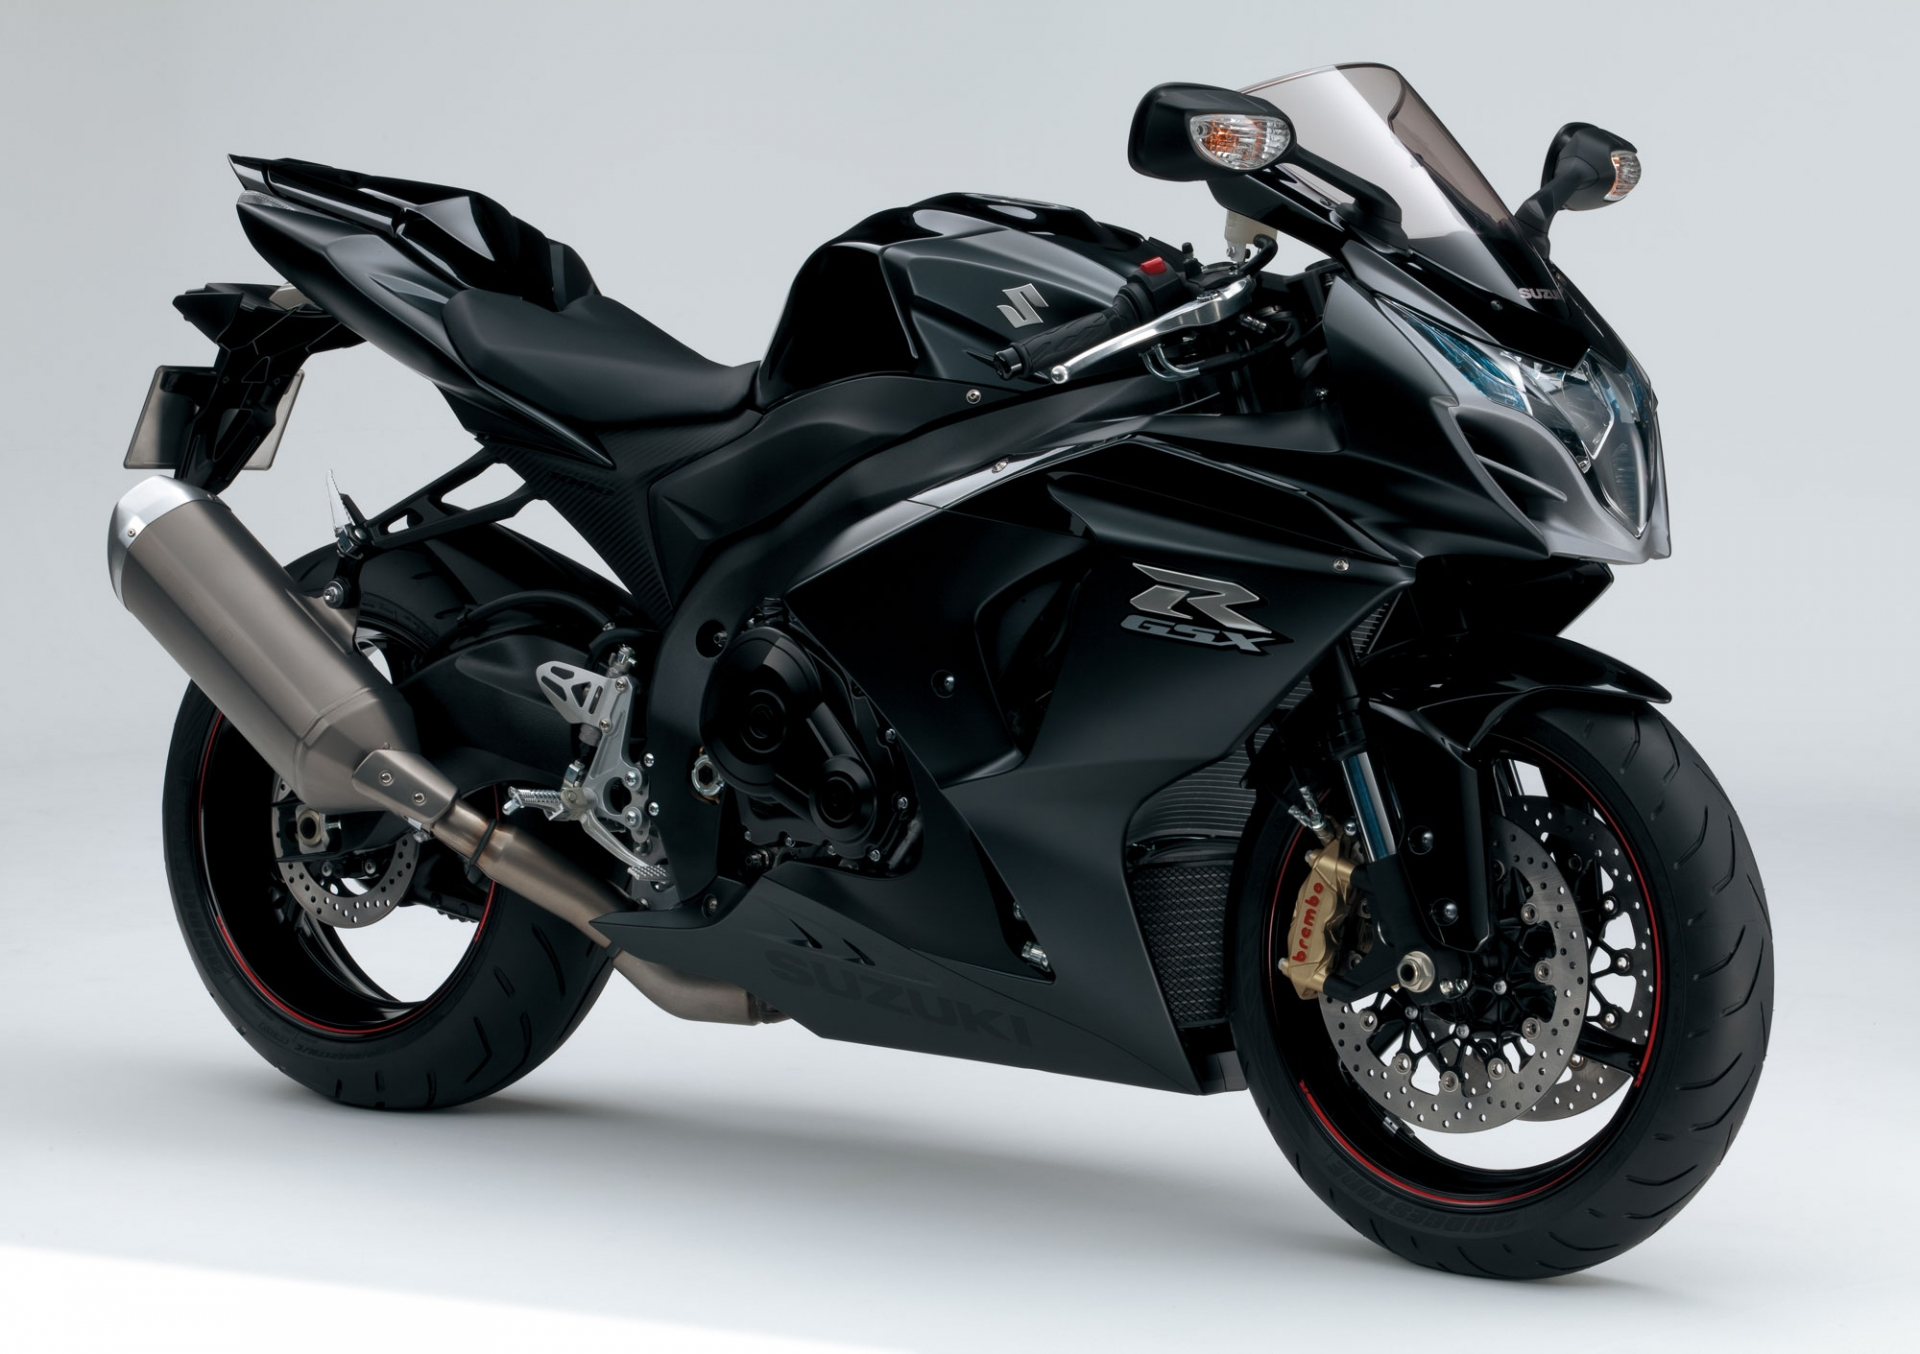 The Yoshimura USA special edition of the GSXR 1000 | moto-choice.com